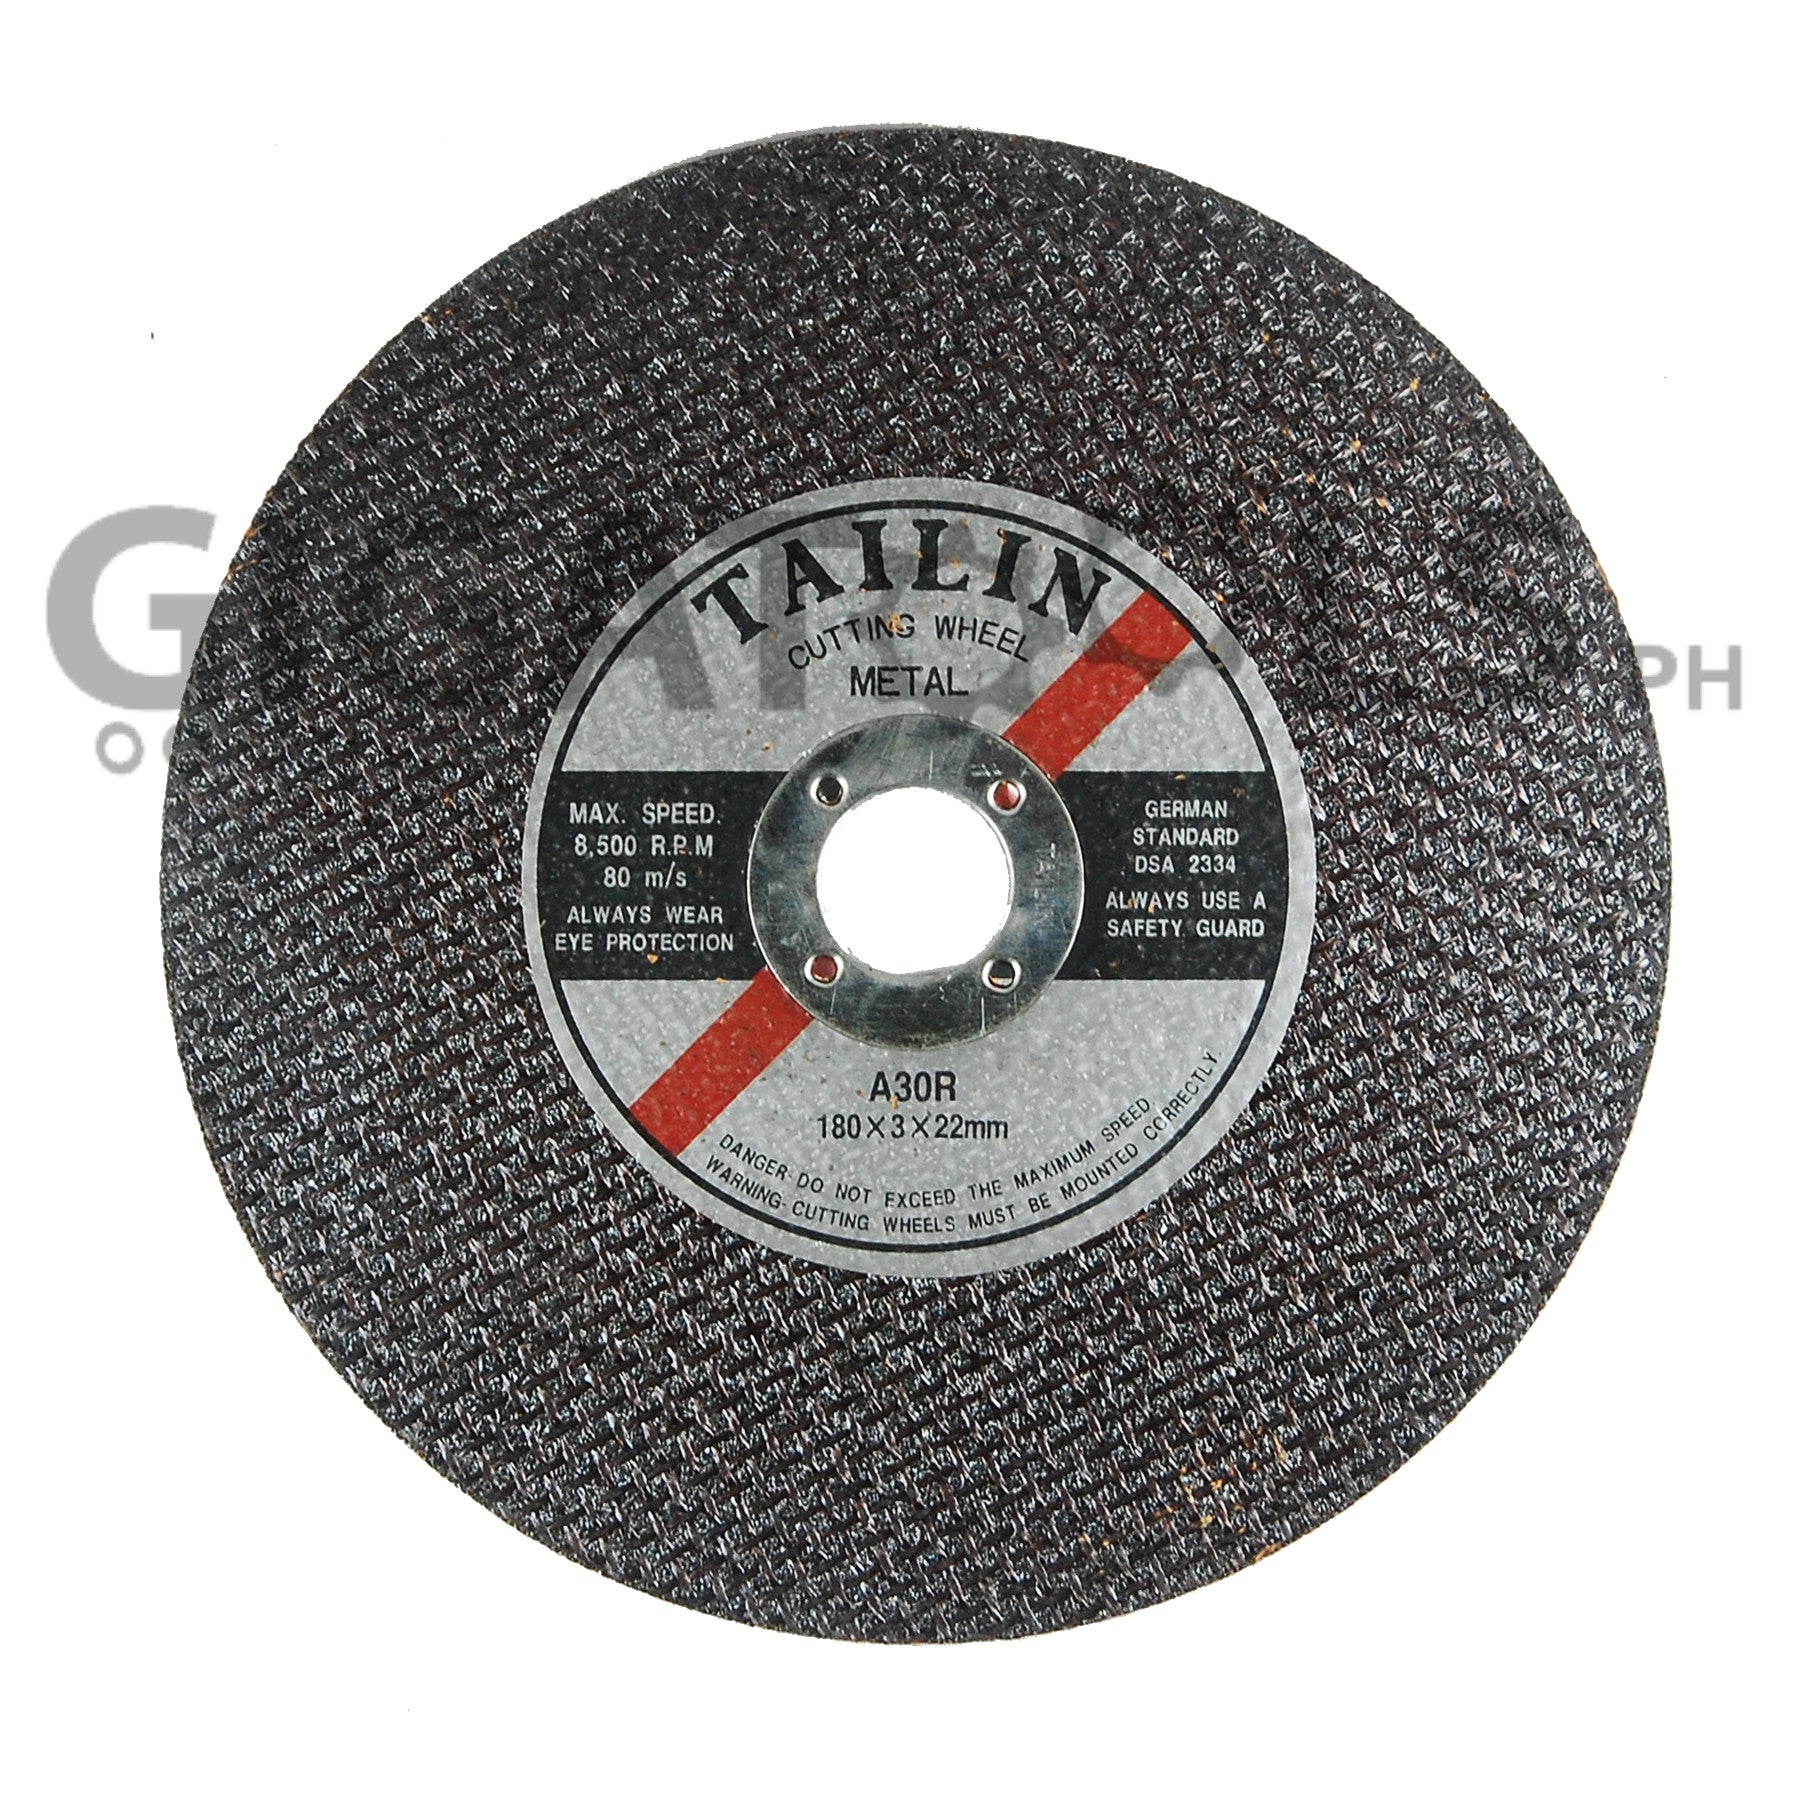 Tailin 7 Quot Cutting Disc For Steel Gigatools Ph